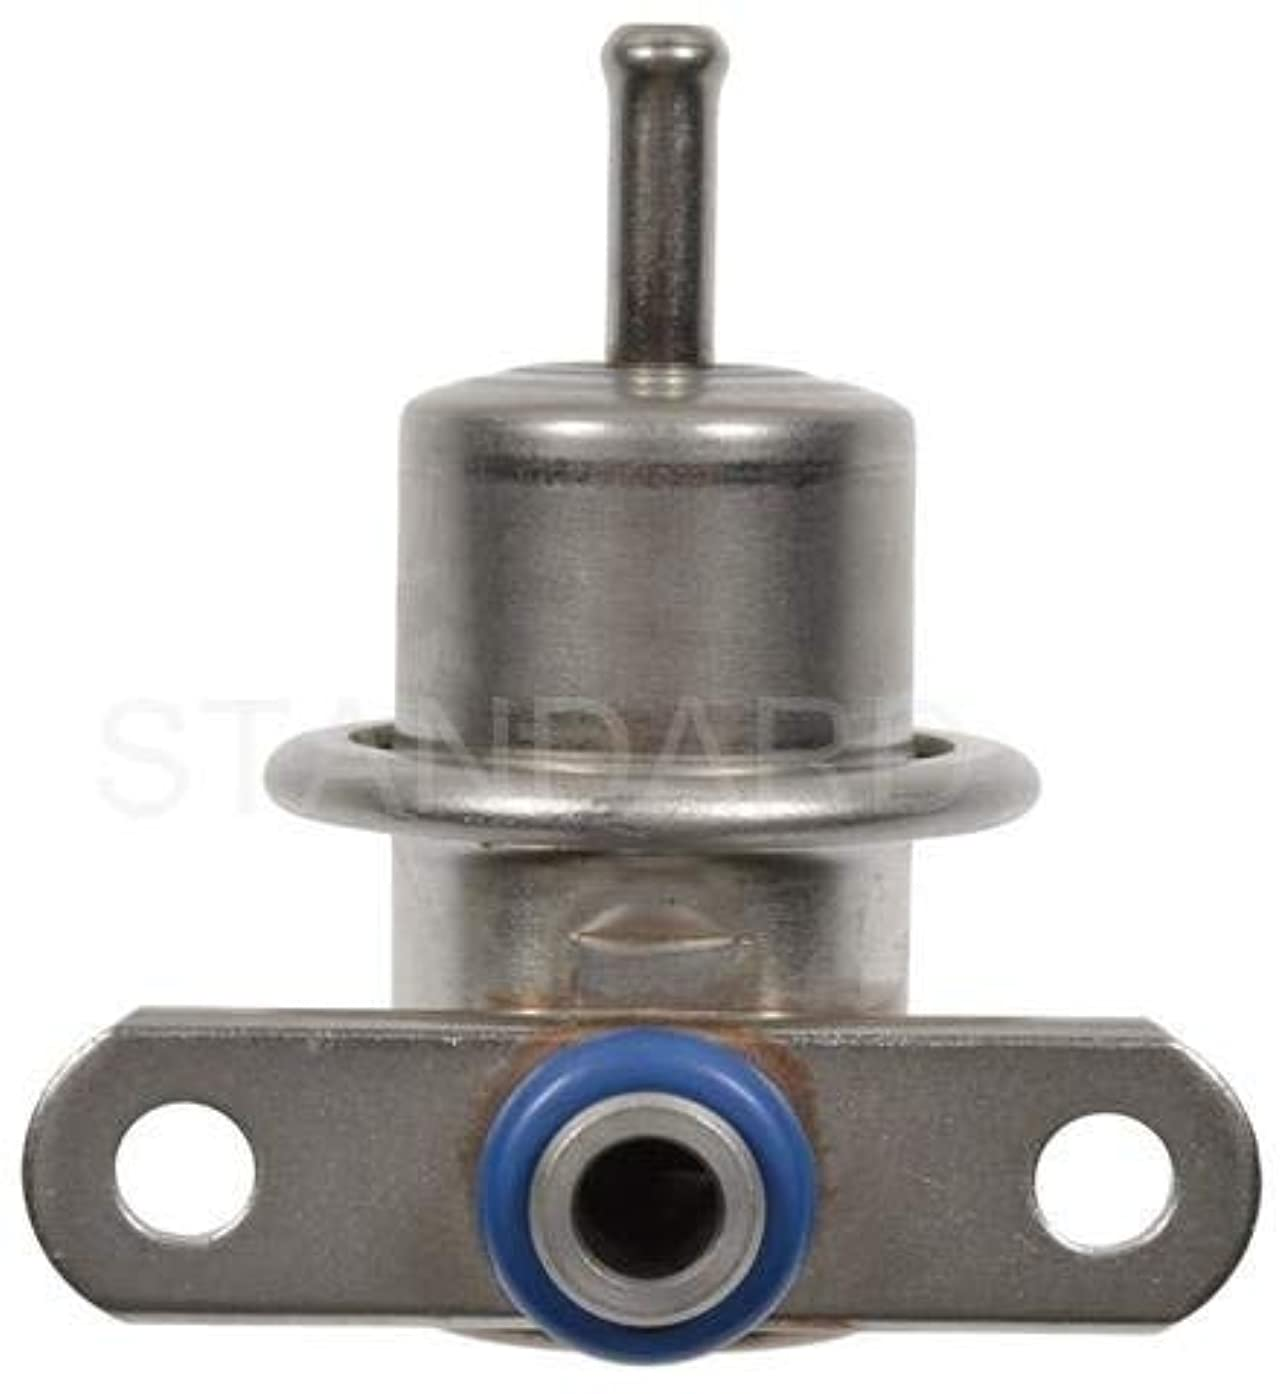 Standard Motor Products FPD80 Fuel Damper Assembly